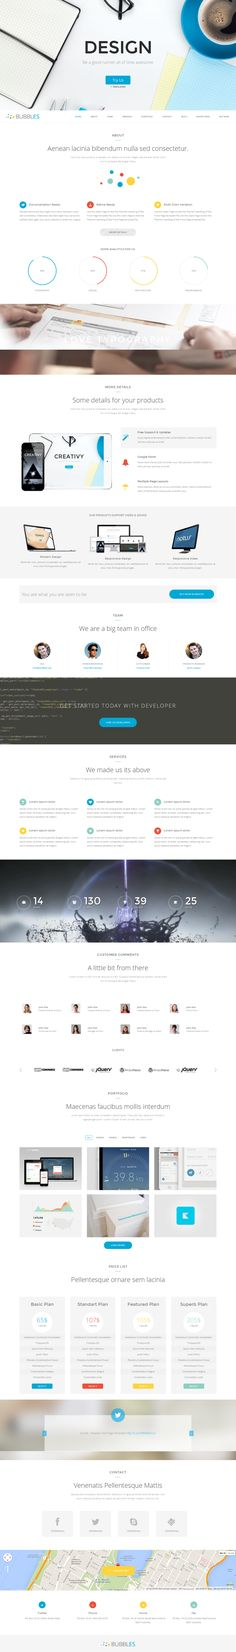 Bubbles Parallax One Page Wordpress Theme by mona lisa, via Behance